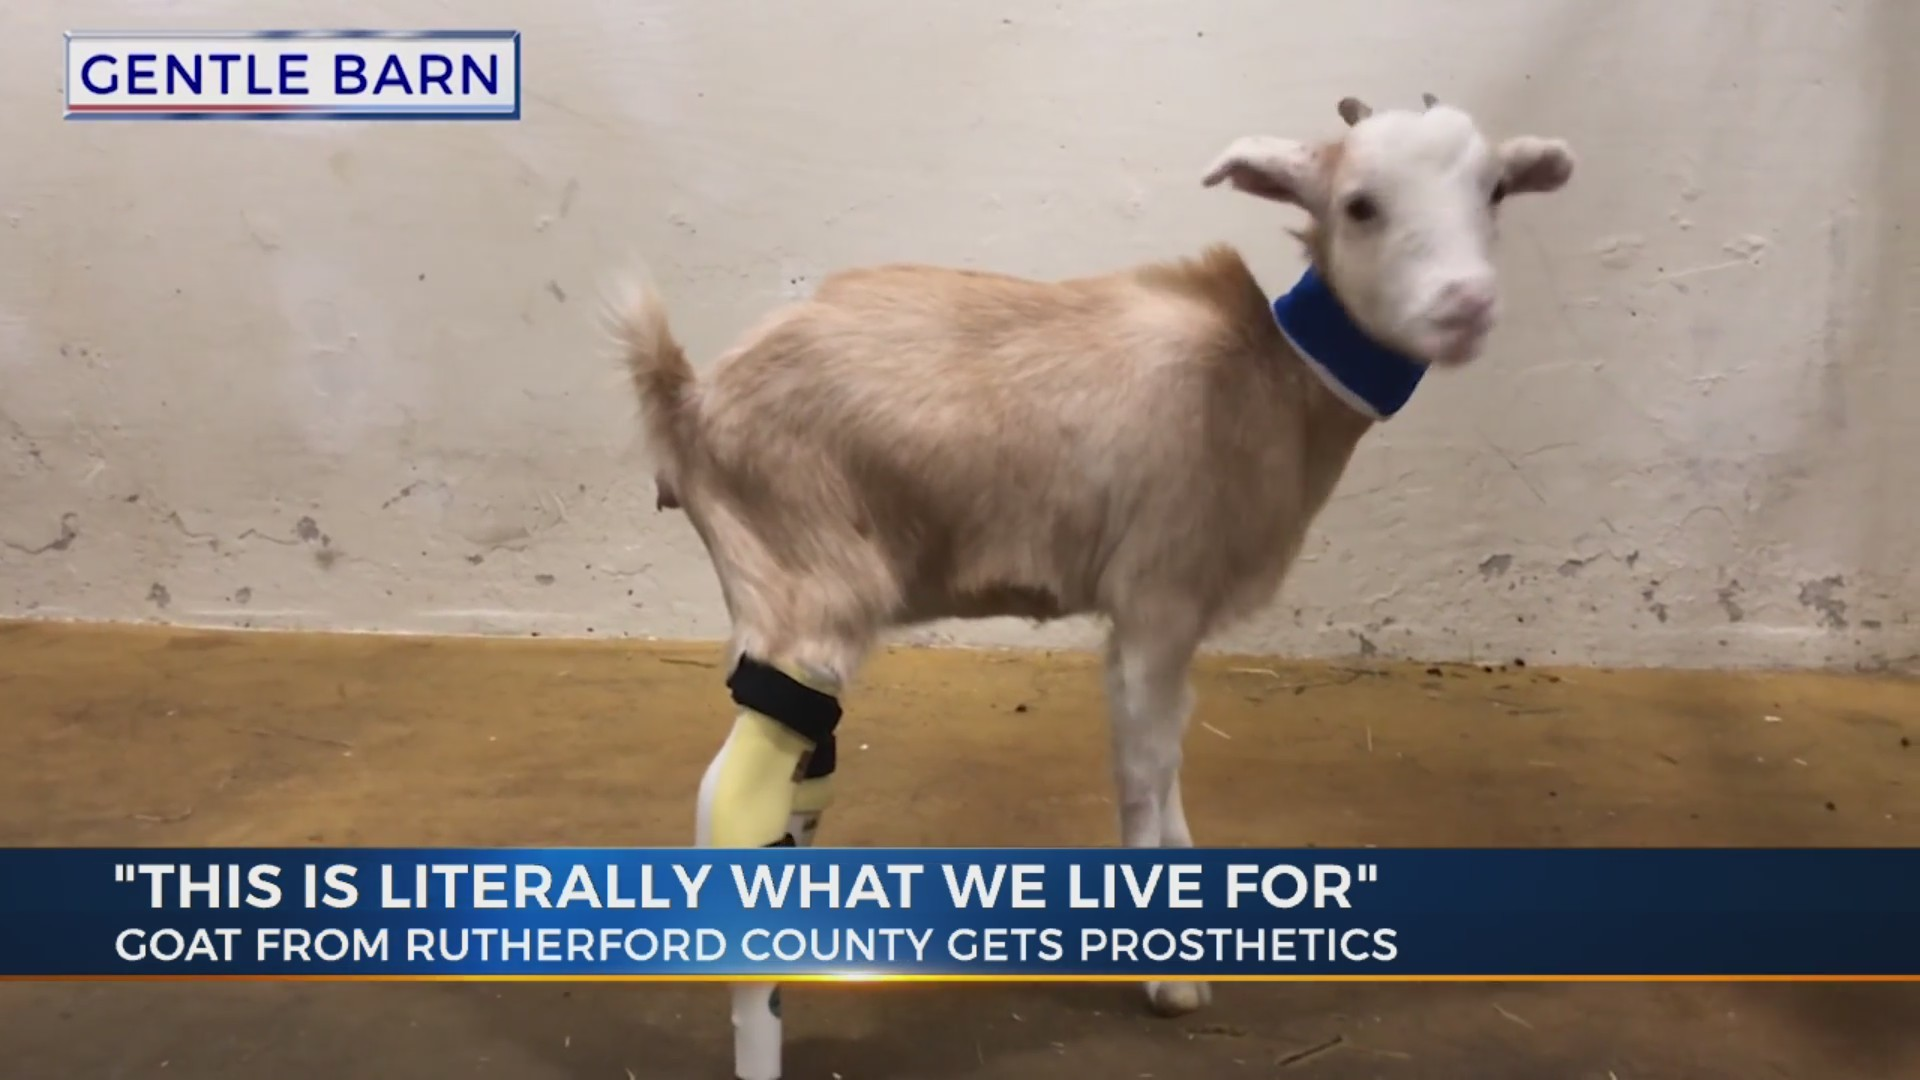 Lolli_the_goat_gets_new_feet_0_20181109054047